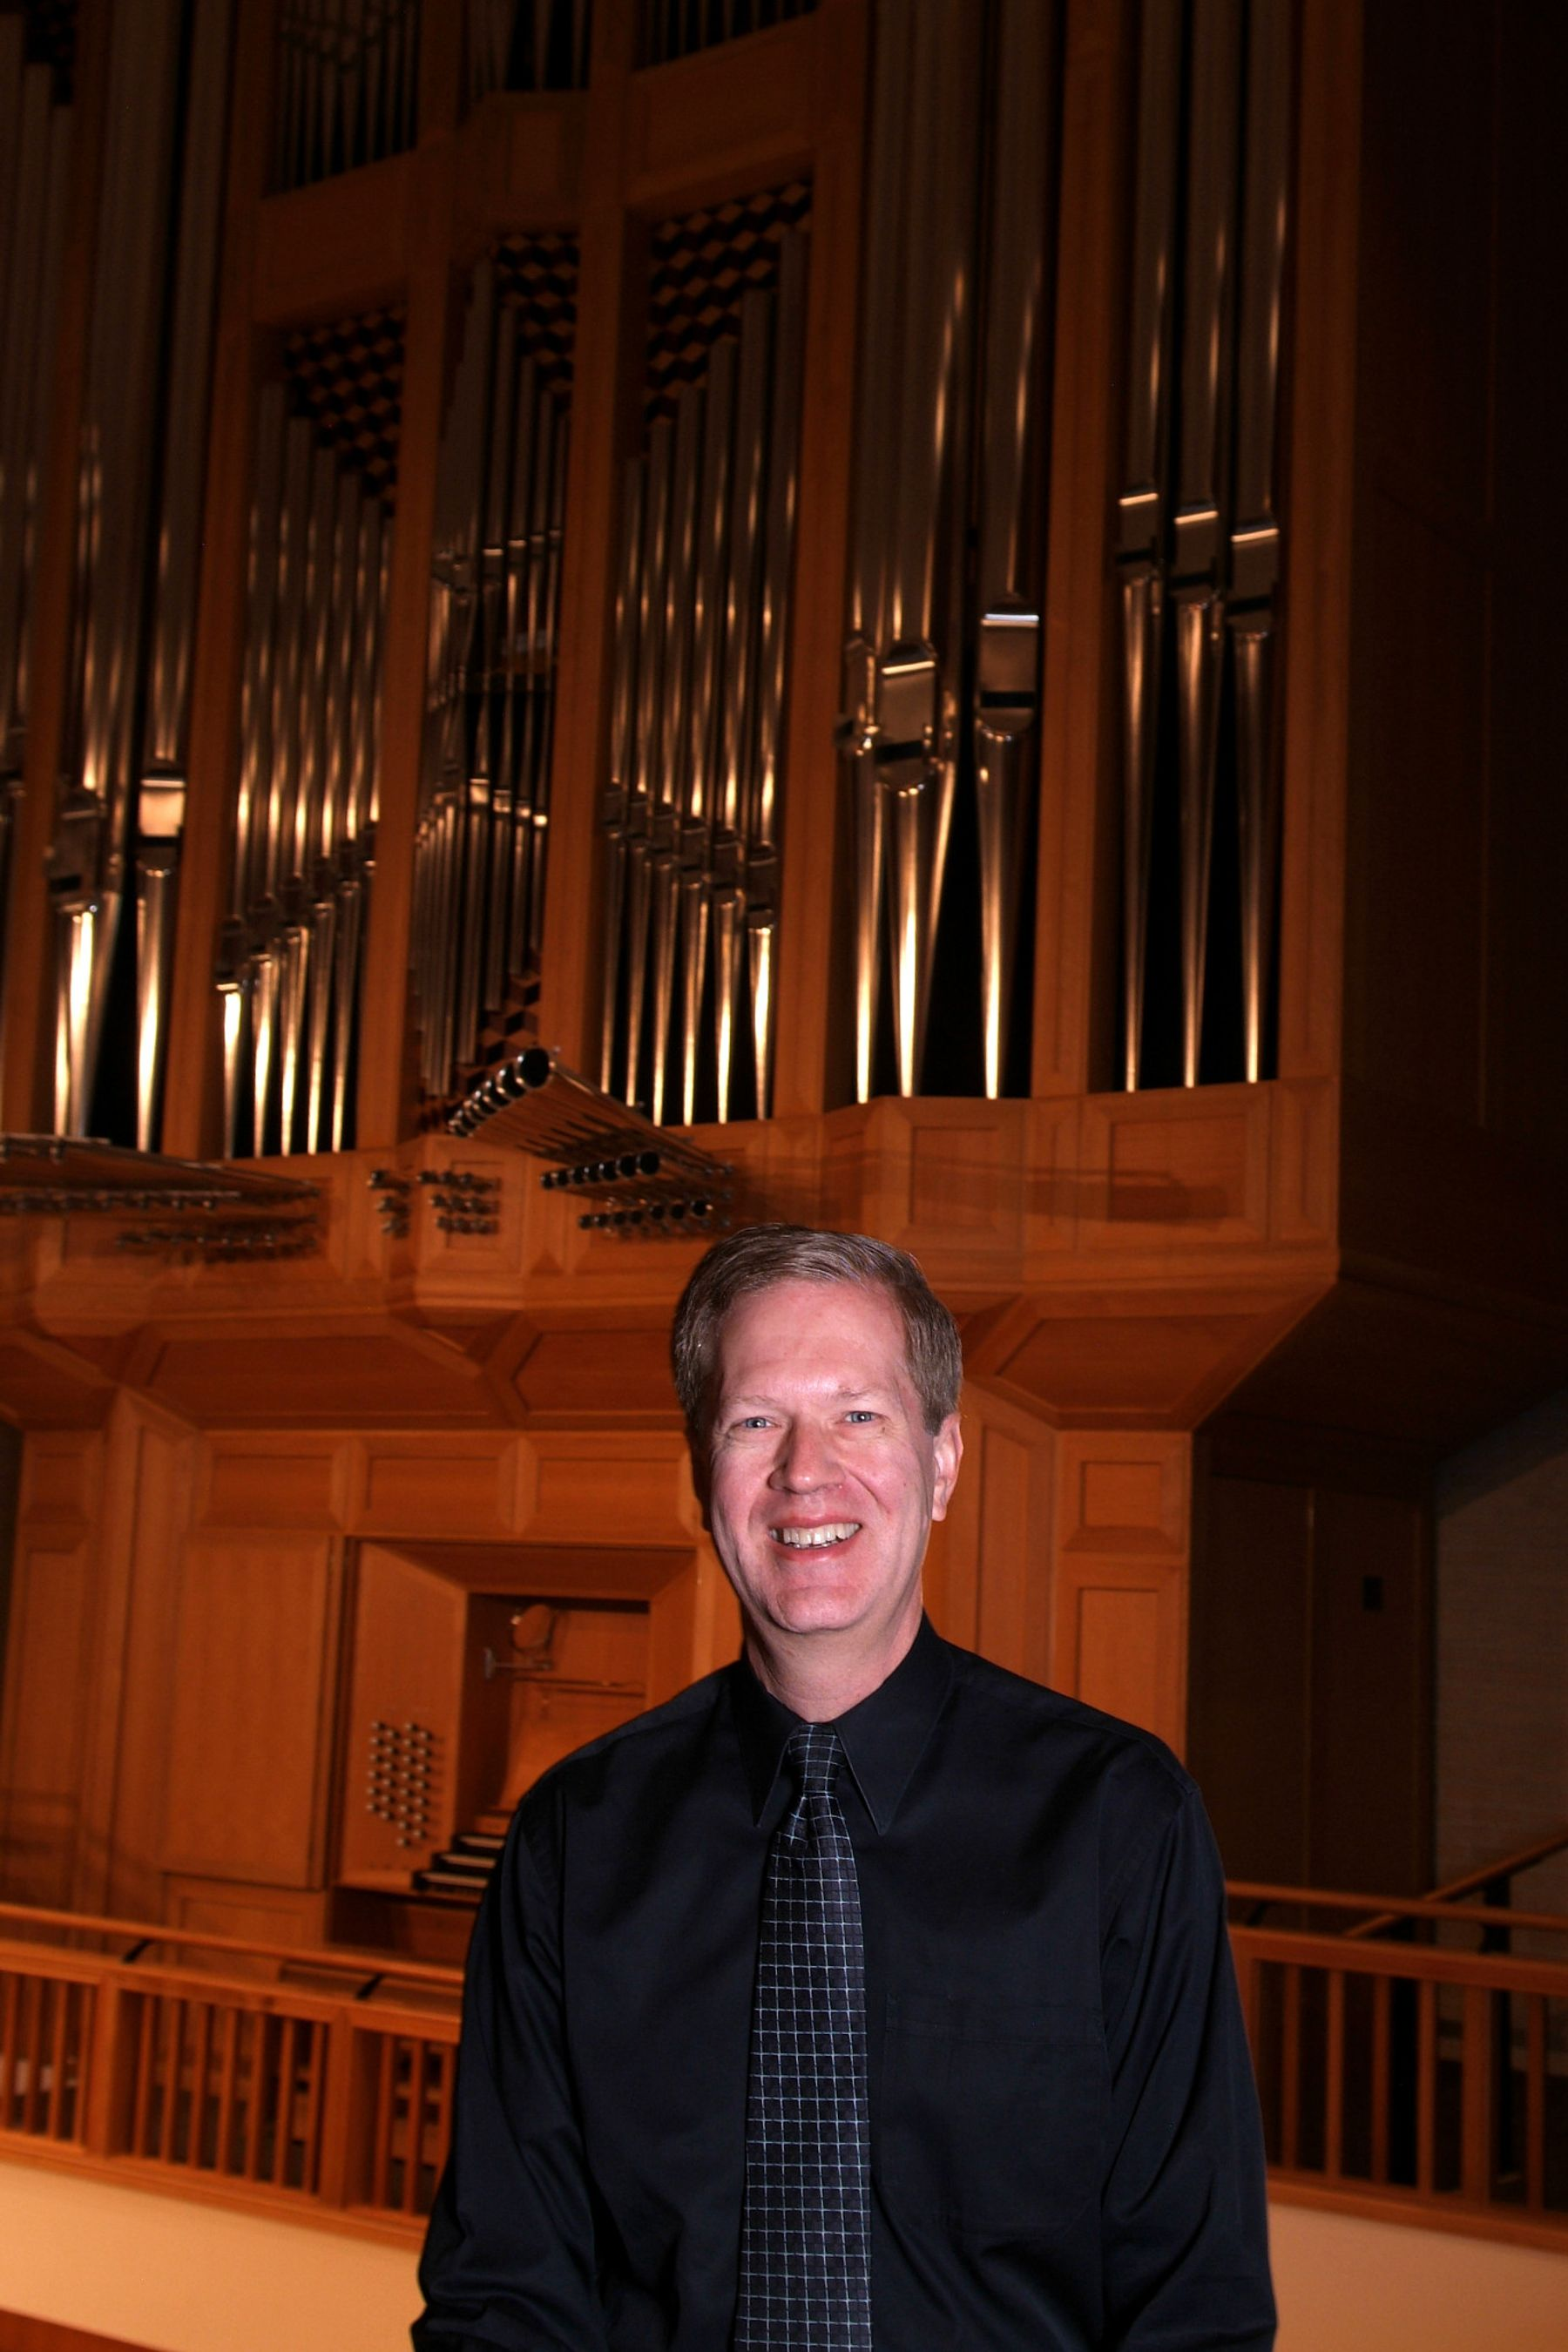 Joseph Galema in front of an organ